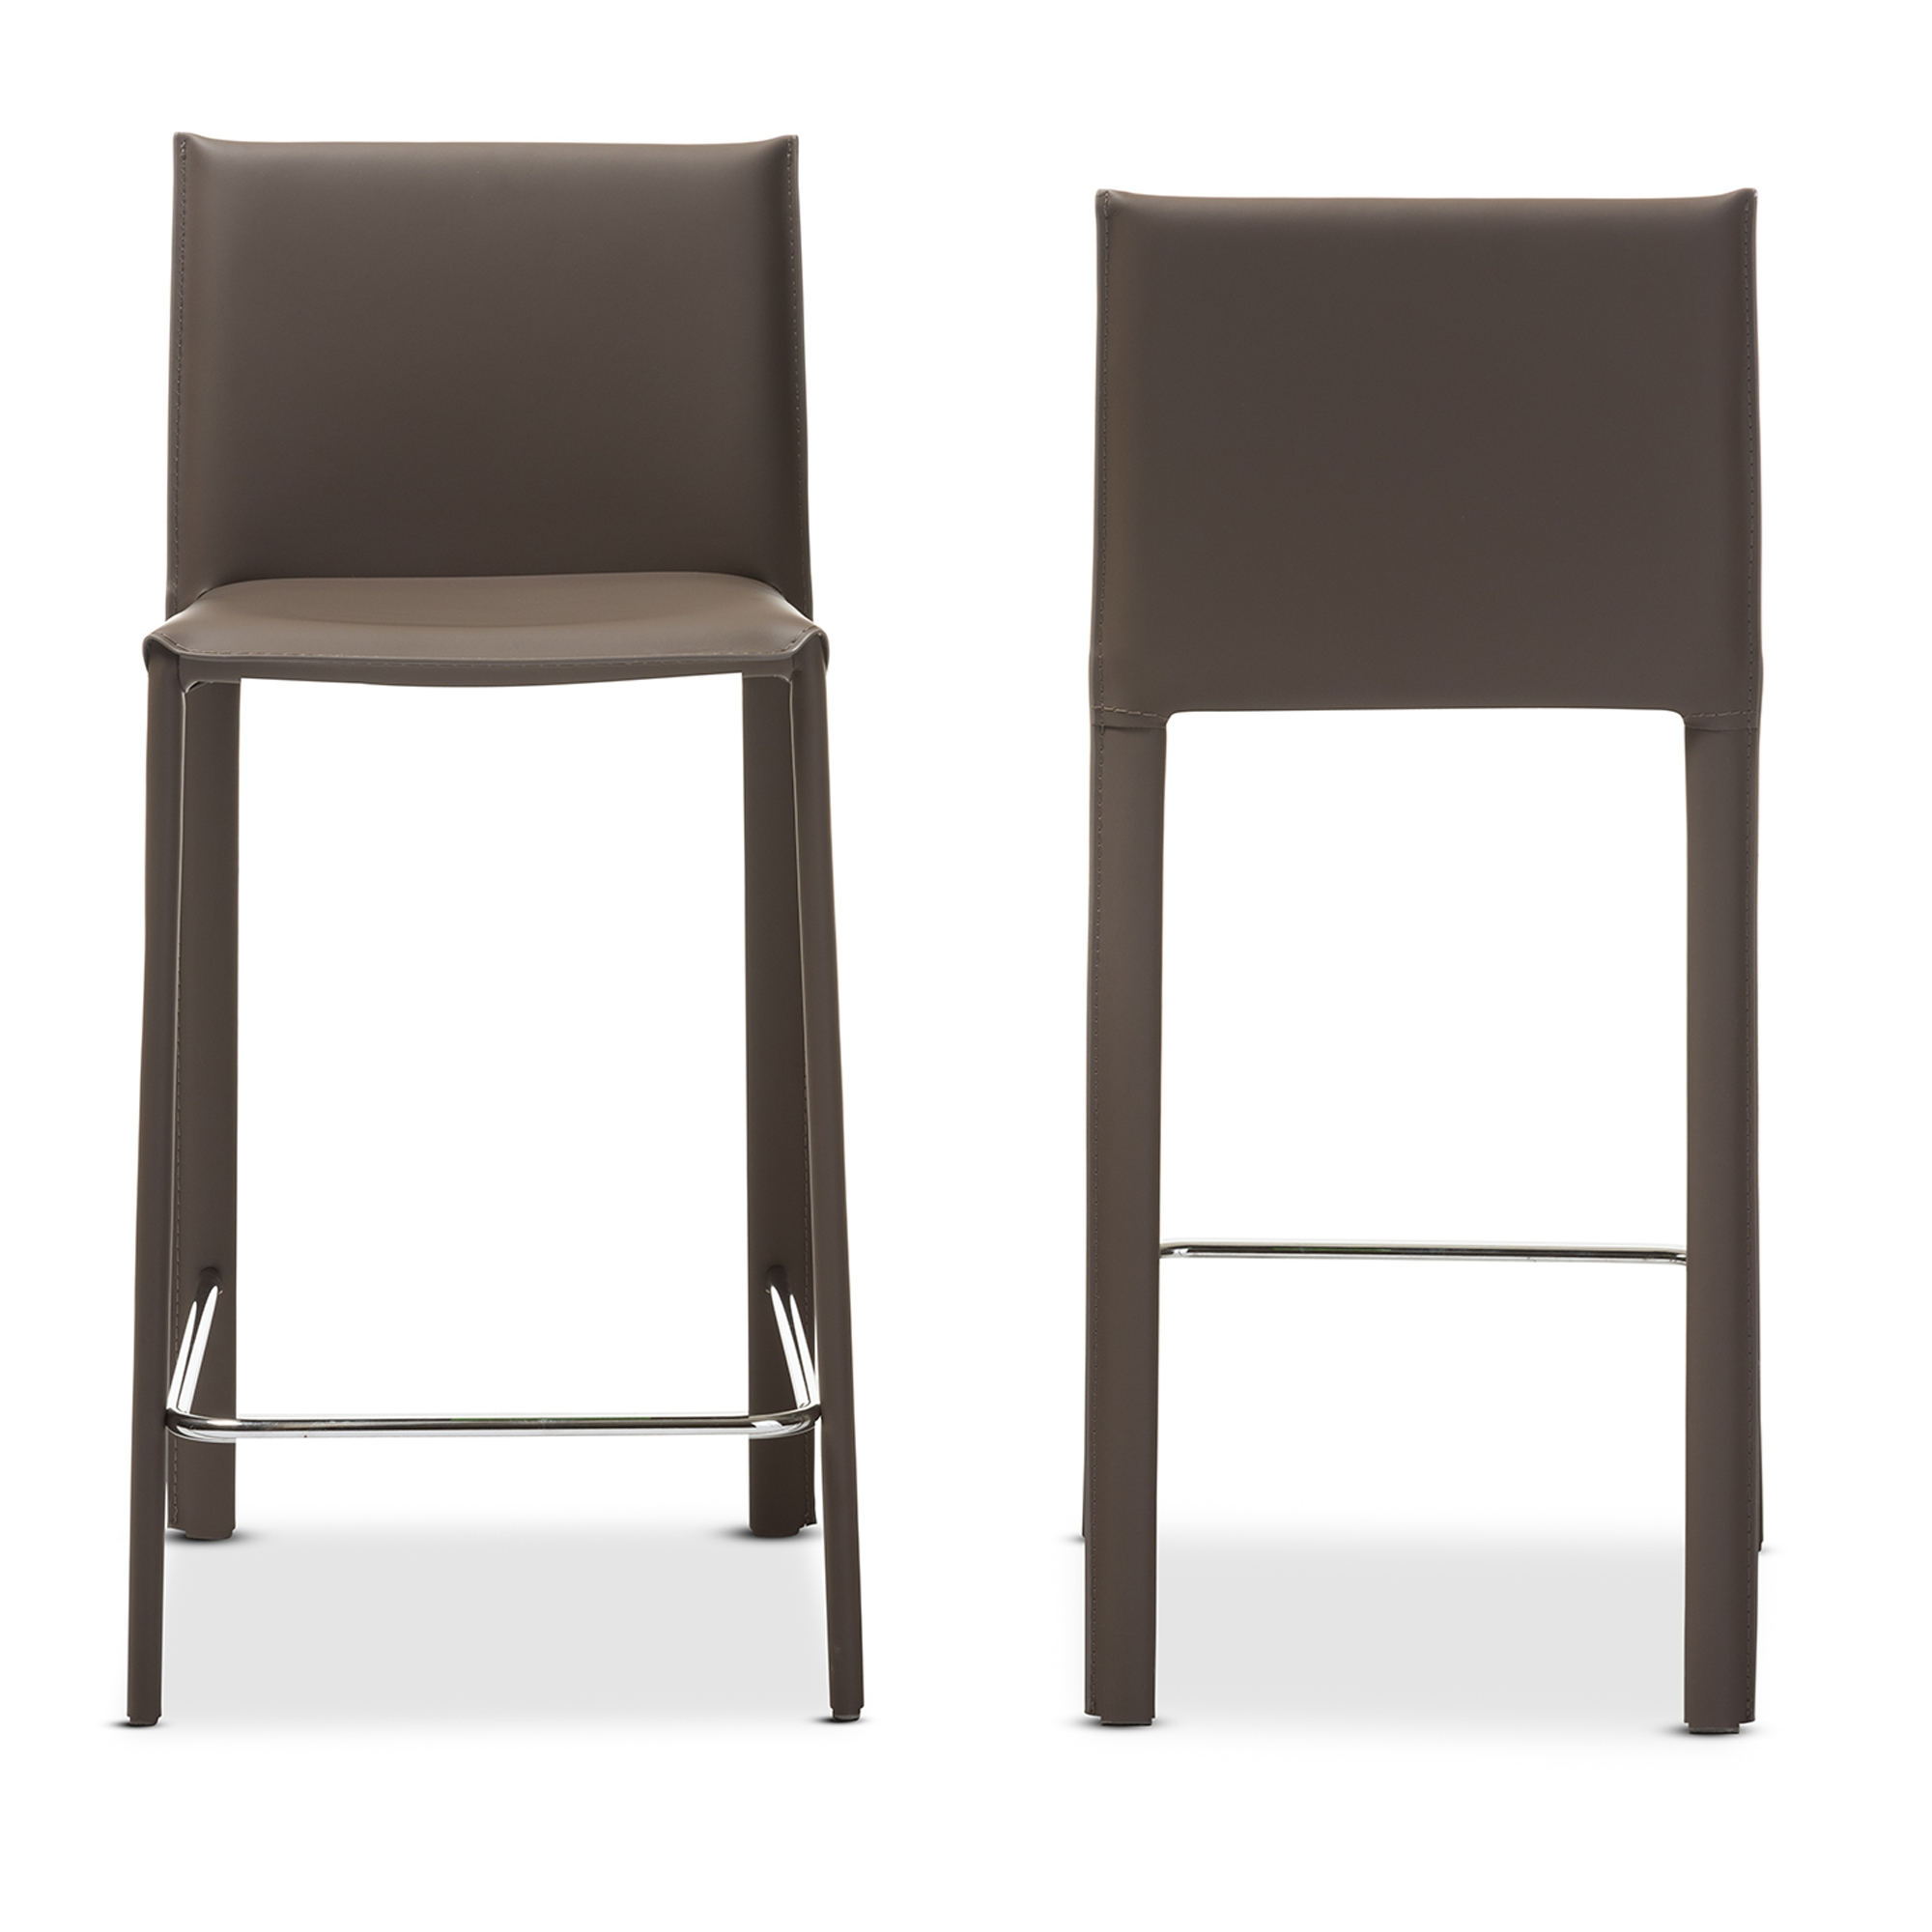 baxton studio crawford modern and taupe leather upholstered counter height stool bsoalc1822a